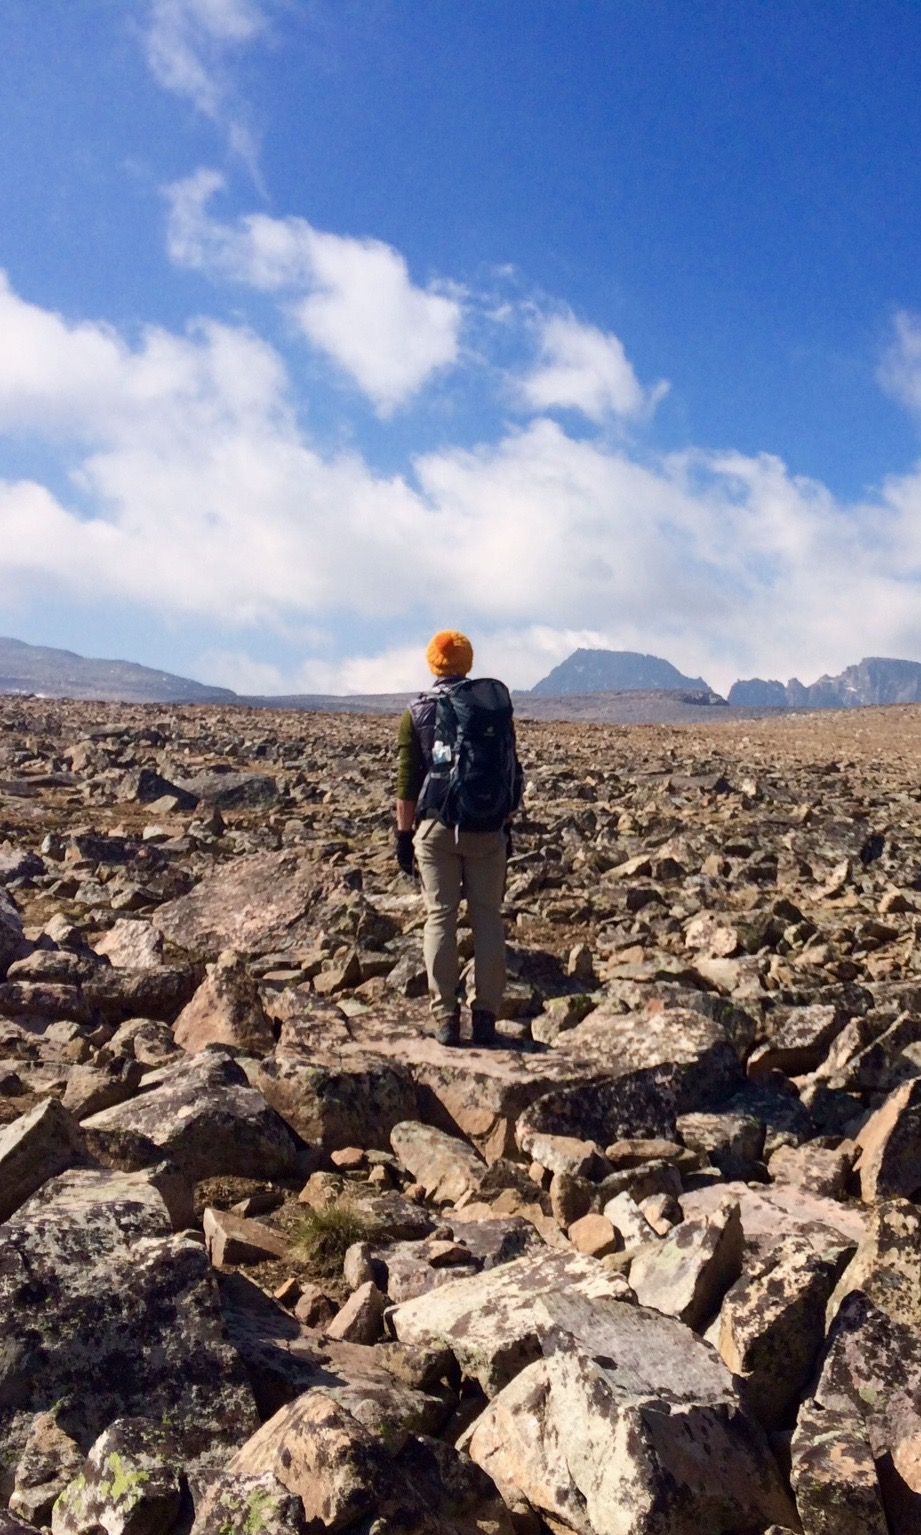 Spencer gazing at Granite Peak in the distance for the first time.  Photo Credit: Vasu Sojitra